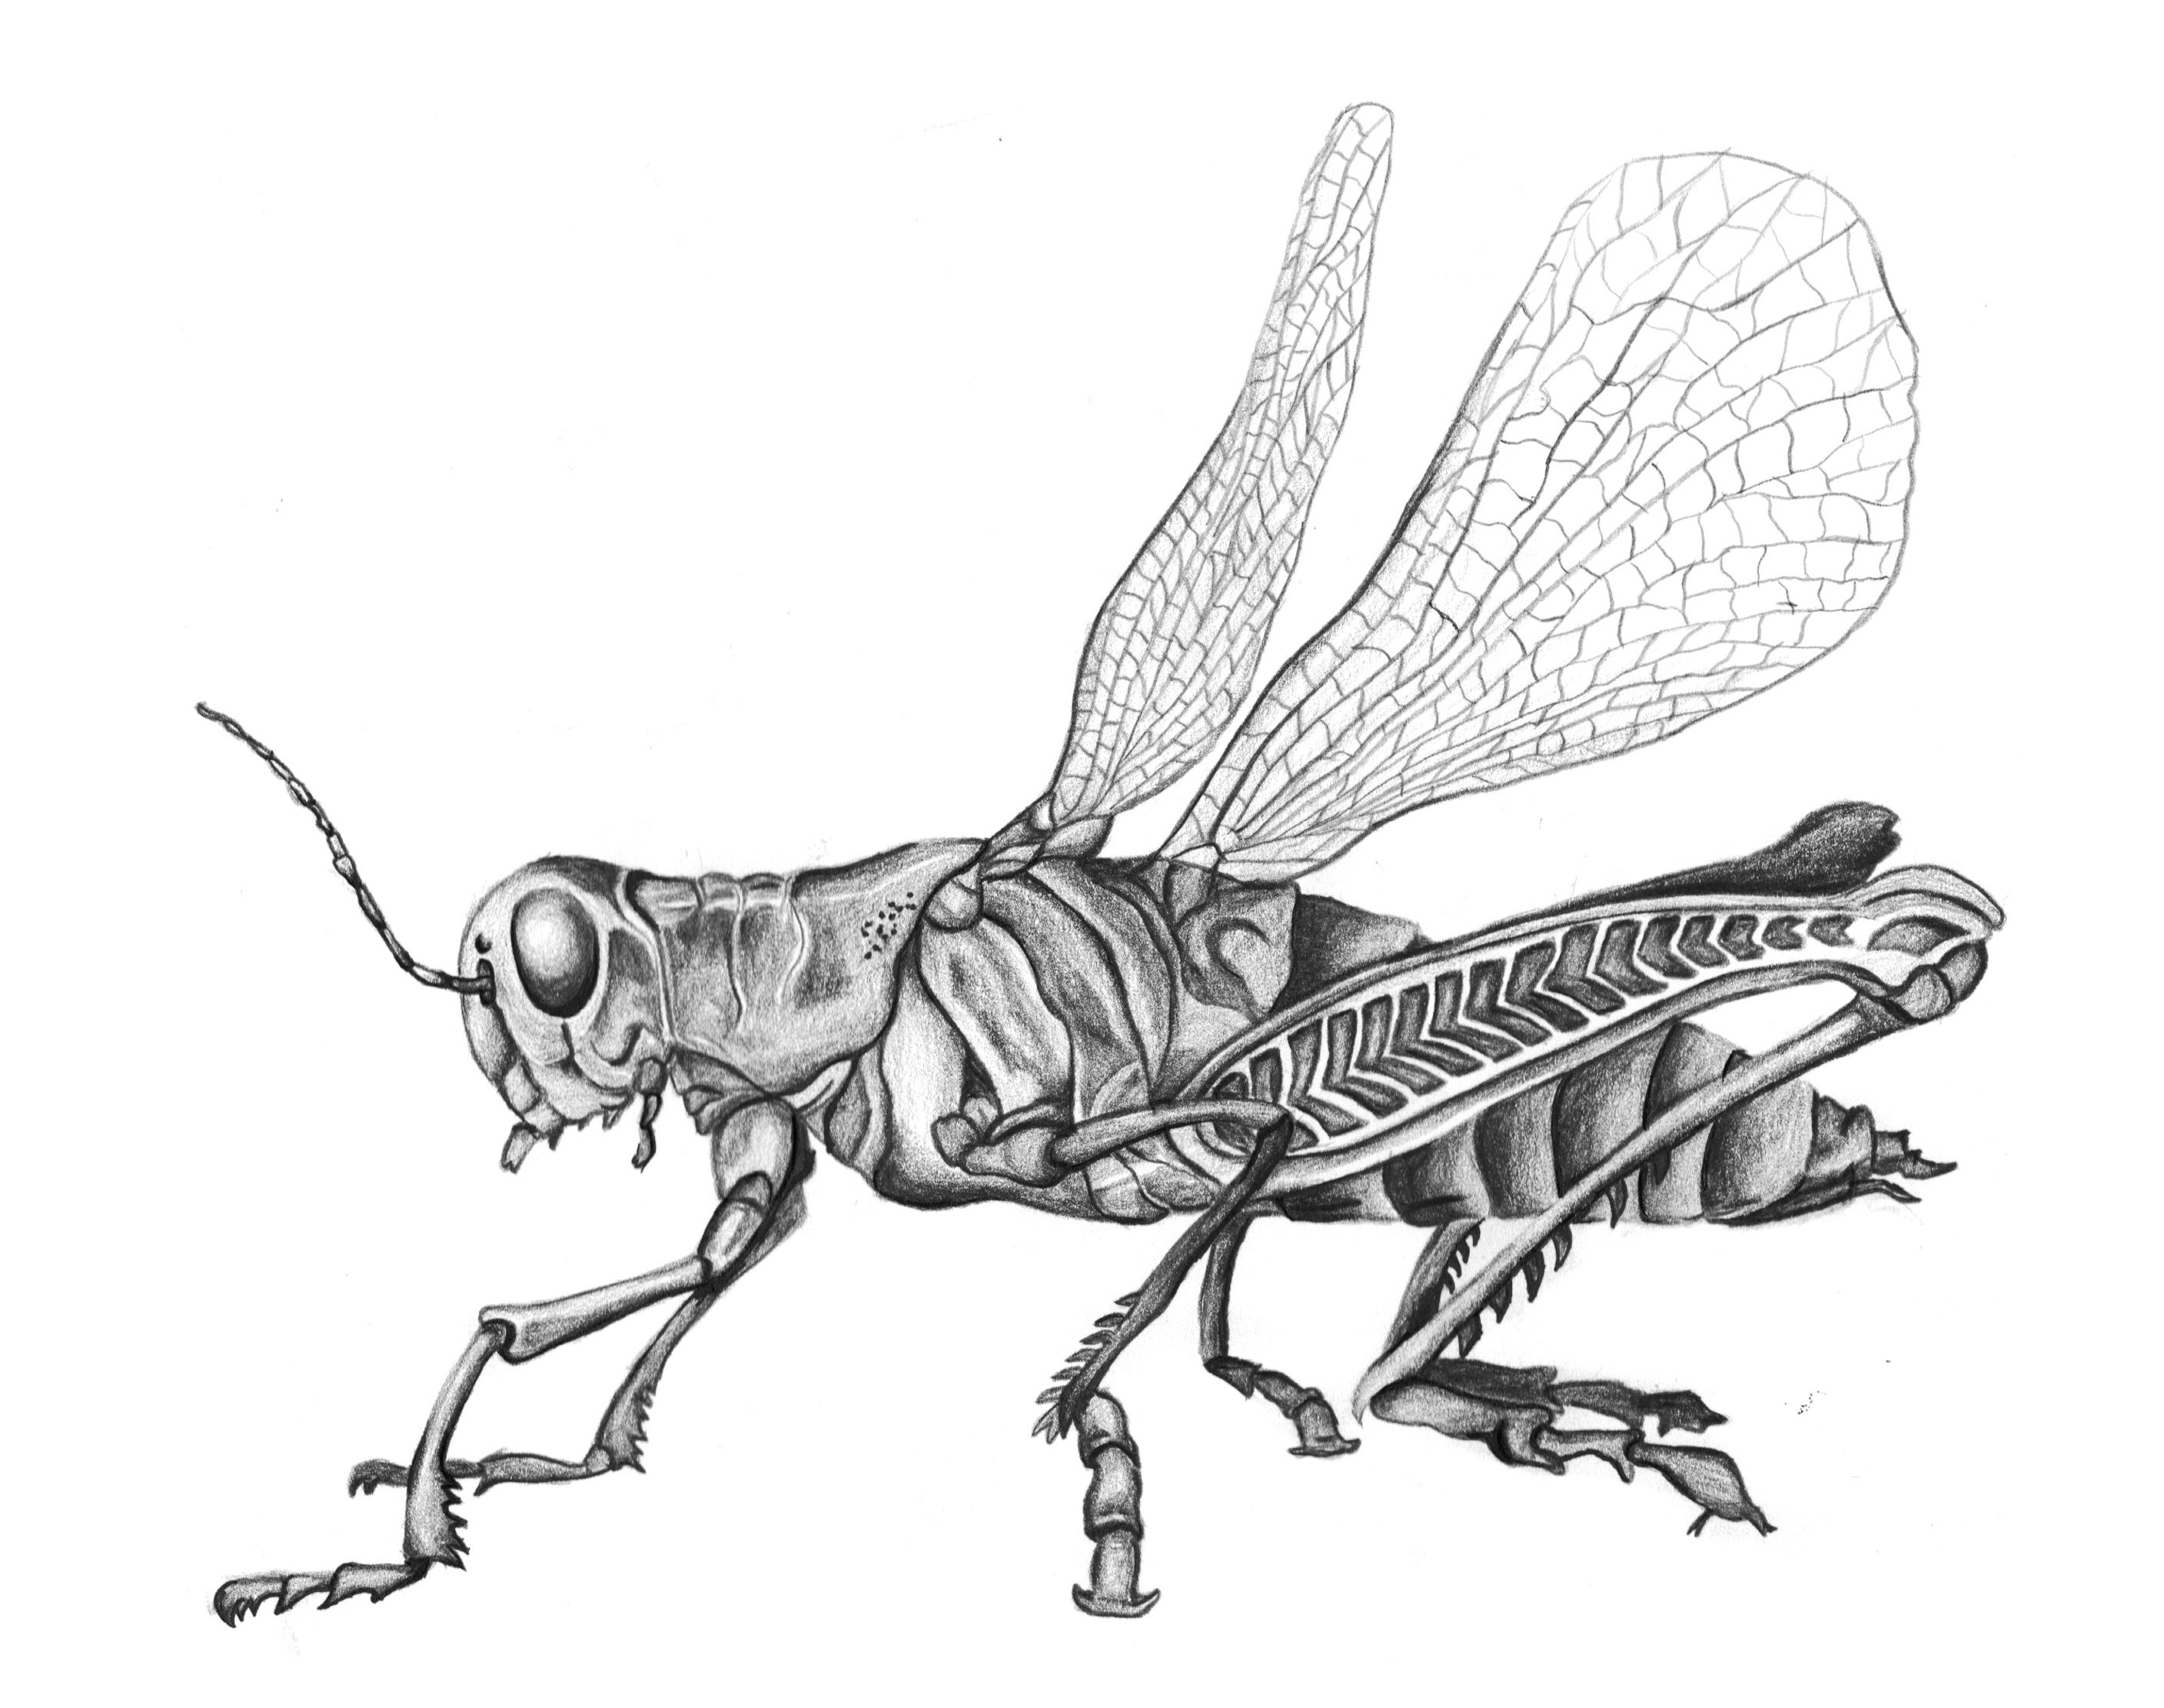 Grasshopper pencil drawing black and white insect sketch drawings